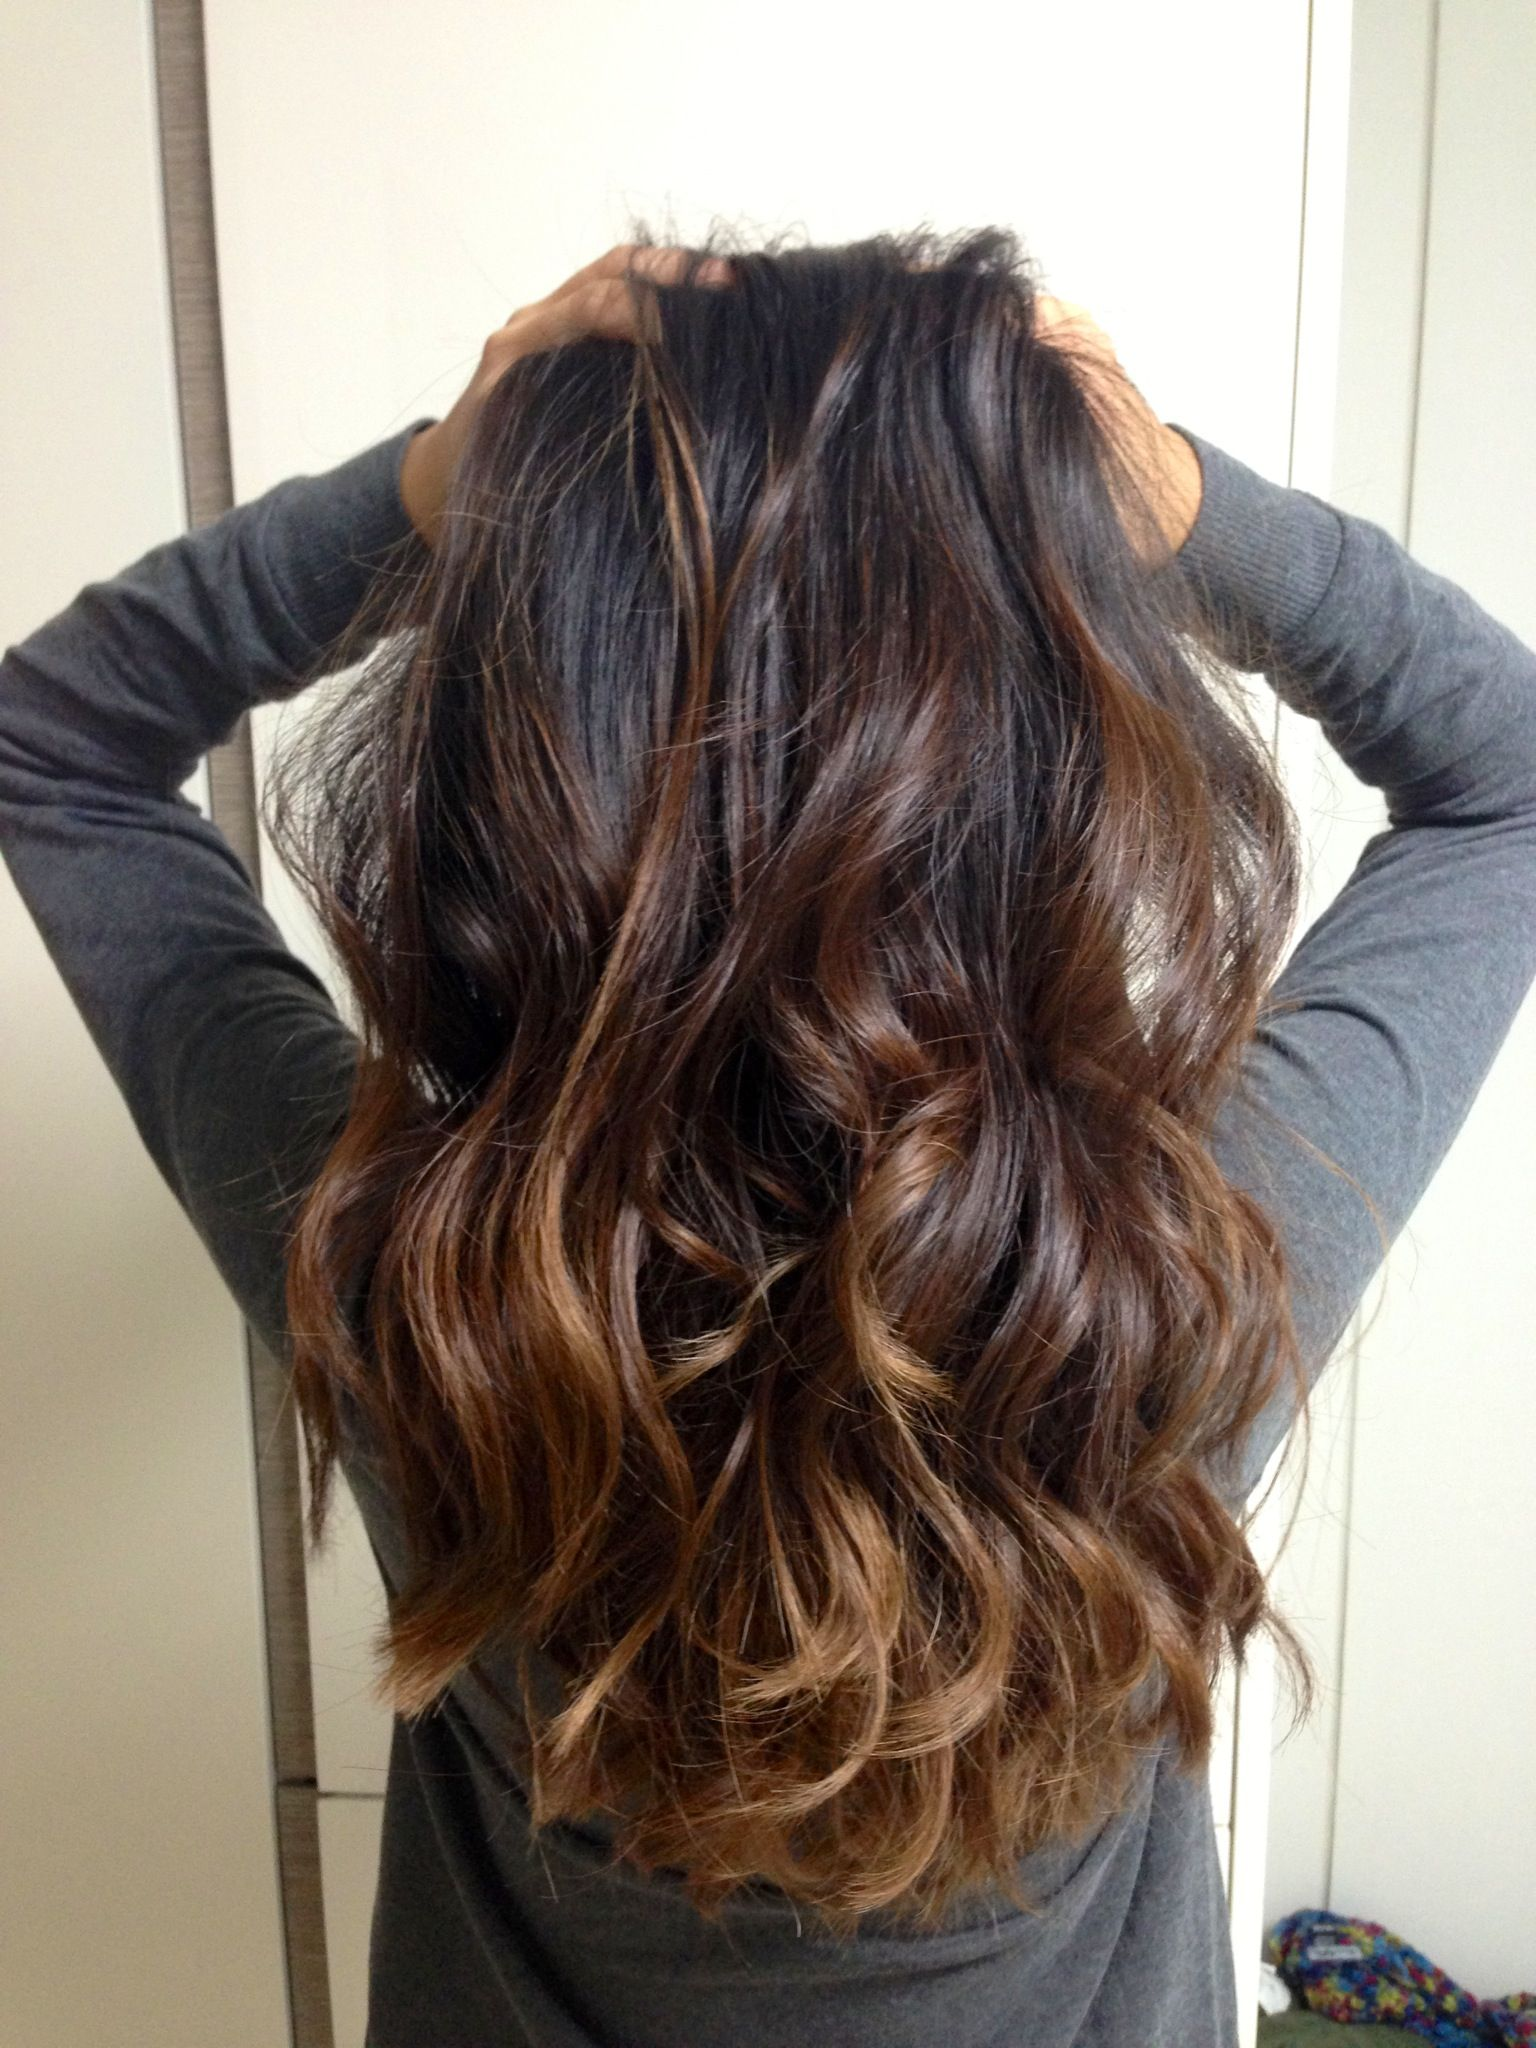 1000+ images about Ombre Hair on Pinterest | Ombre hair ...